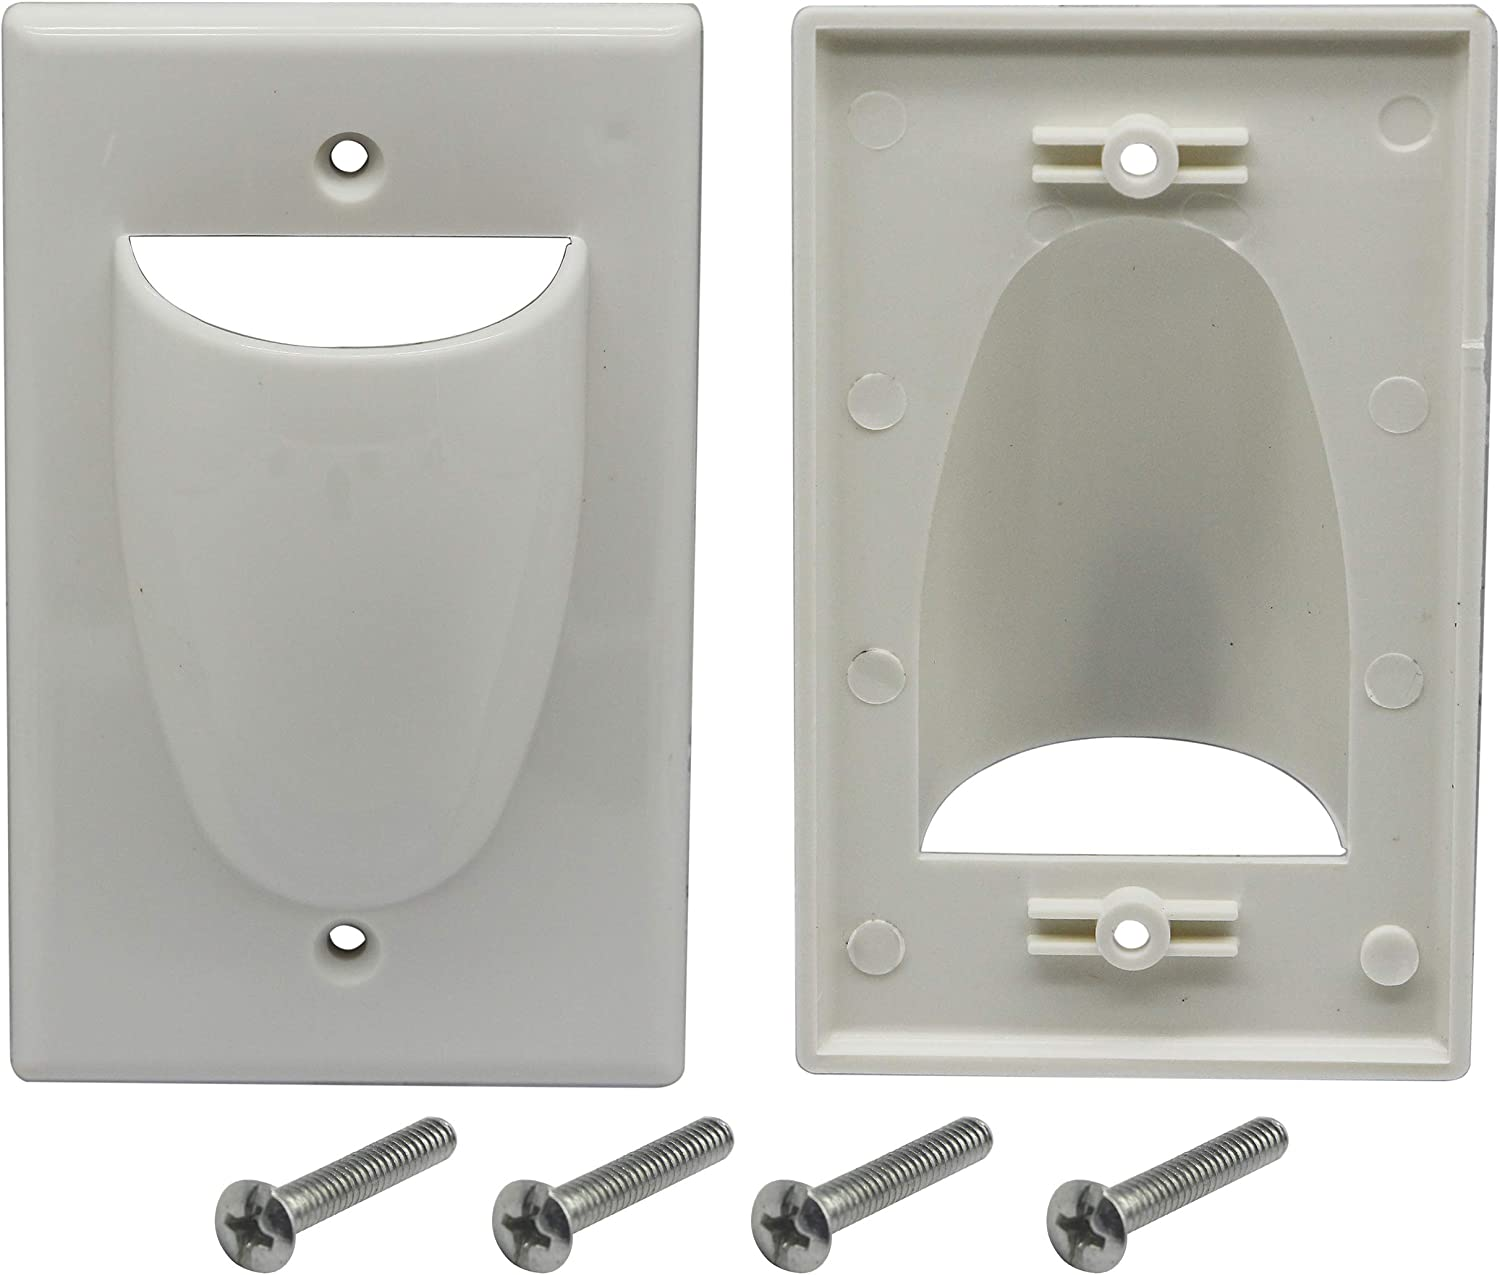 DataComm Recessed Bulk Cable Wall Plate w Power Great for TV HDMI Sleek Install